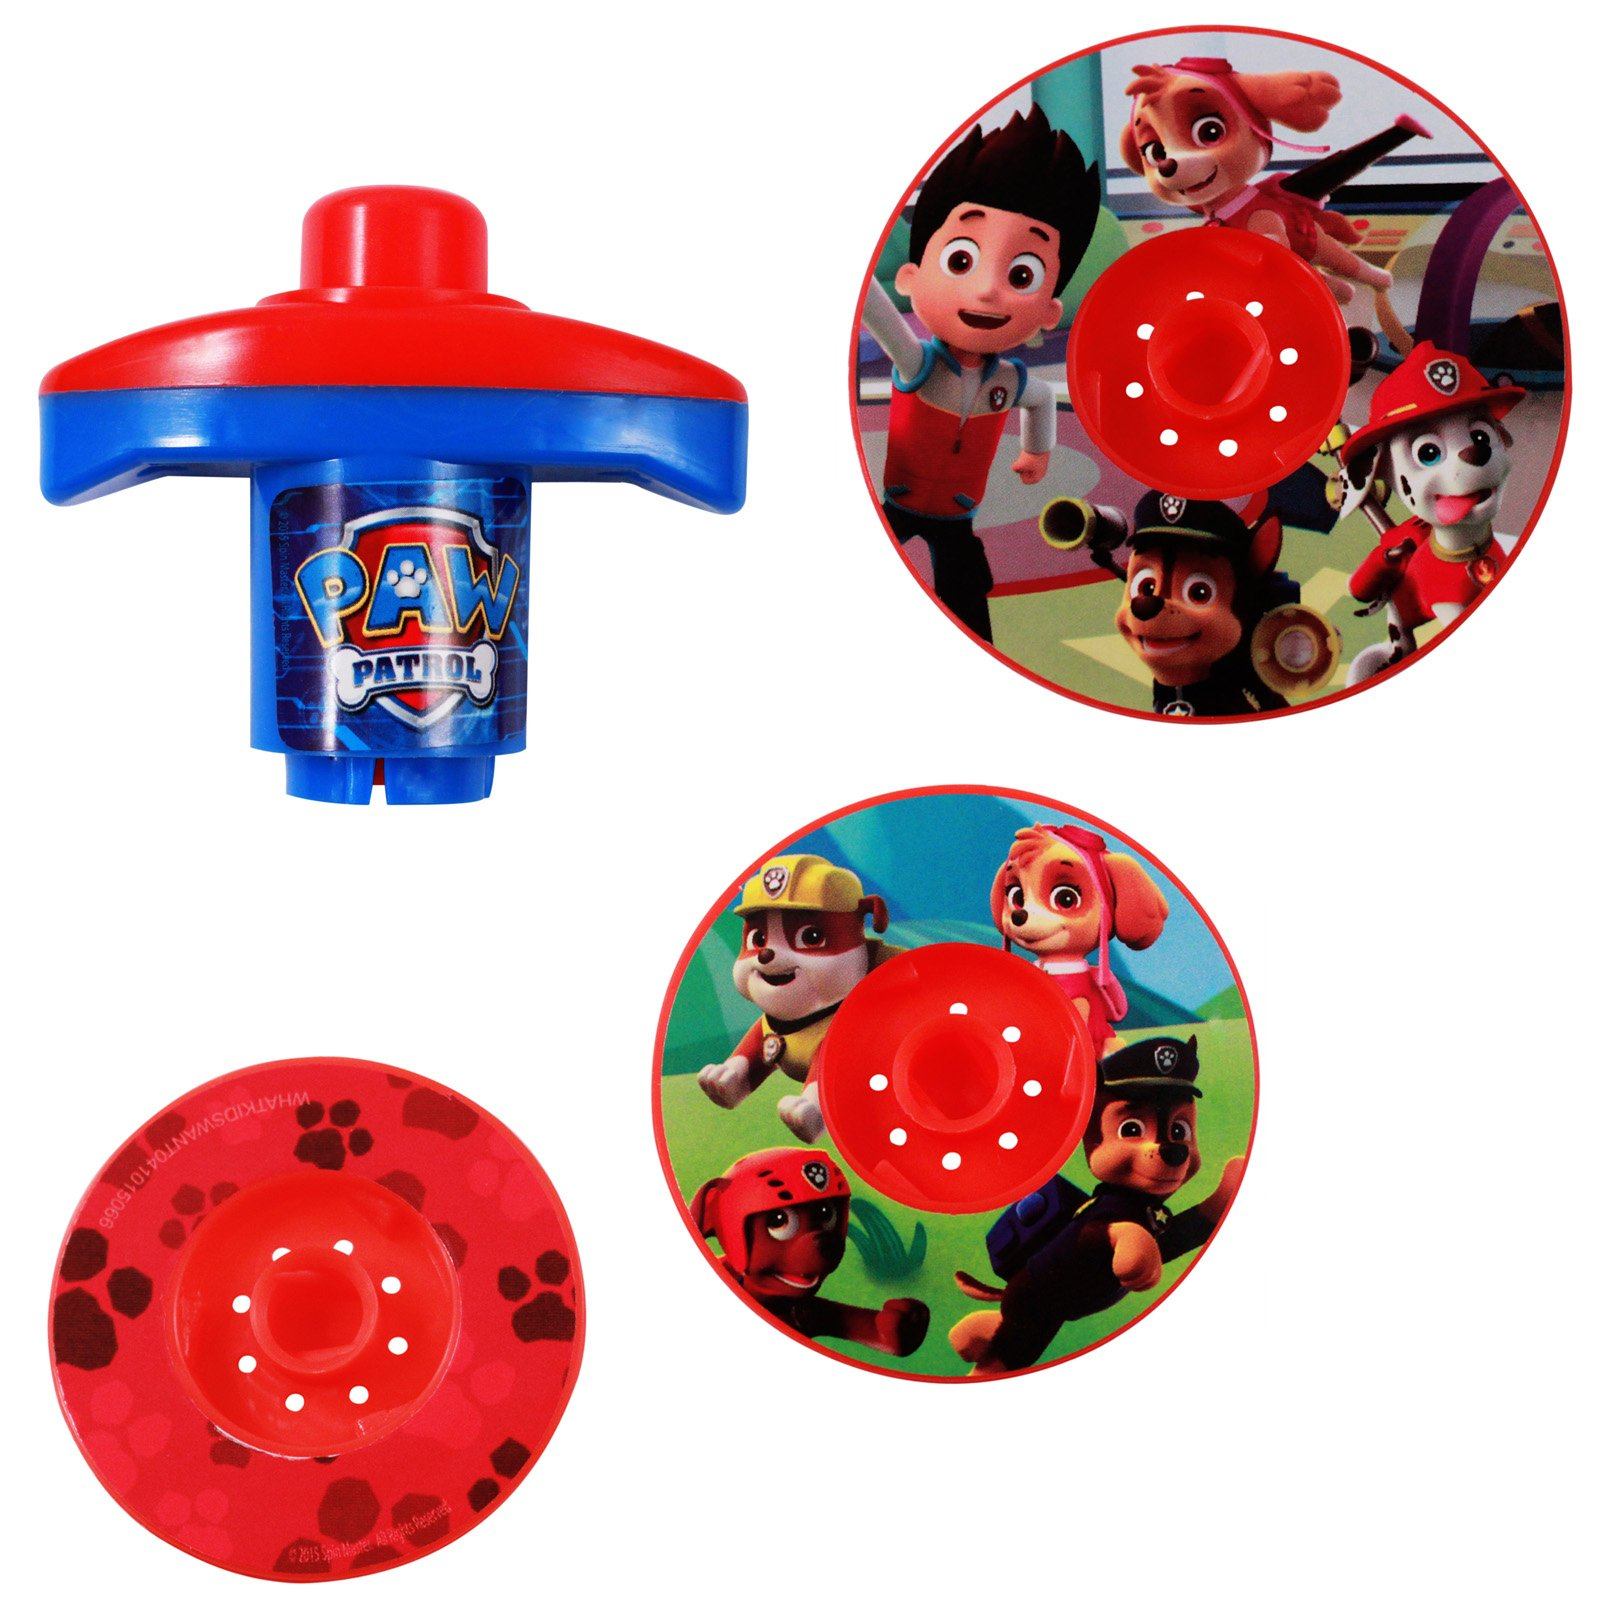 Nickelodeon Paw Patrol Spinning Battle Tops Party Favor